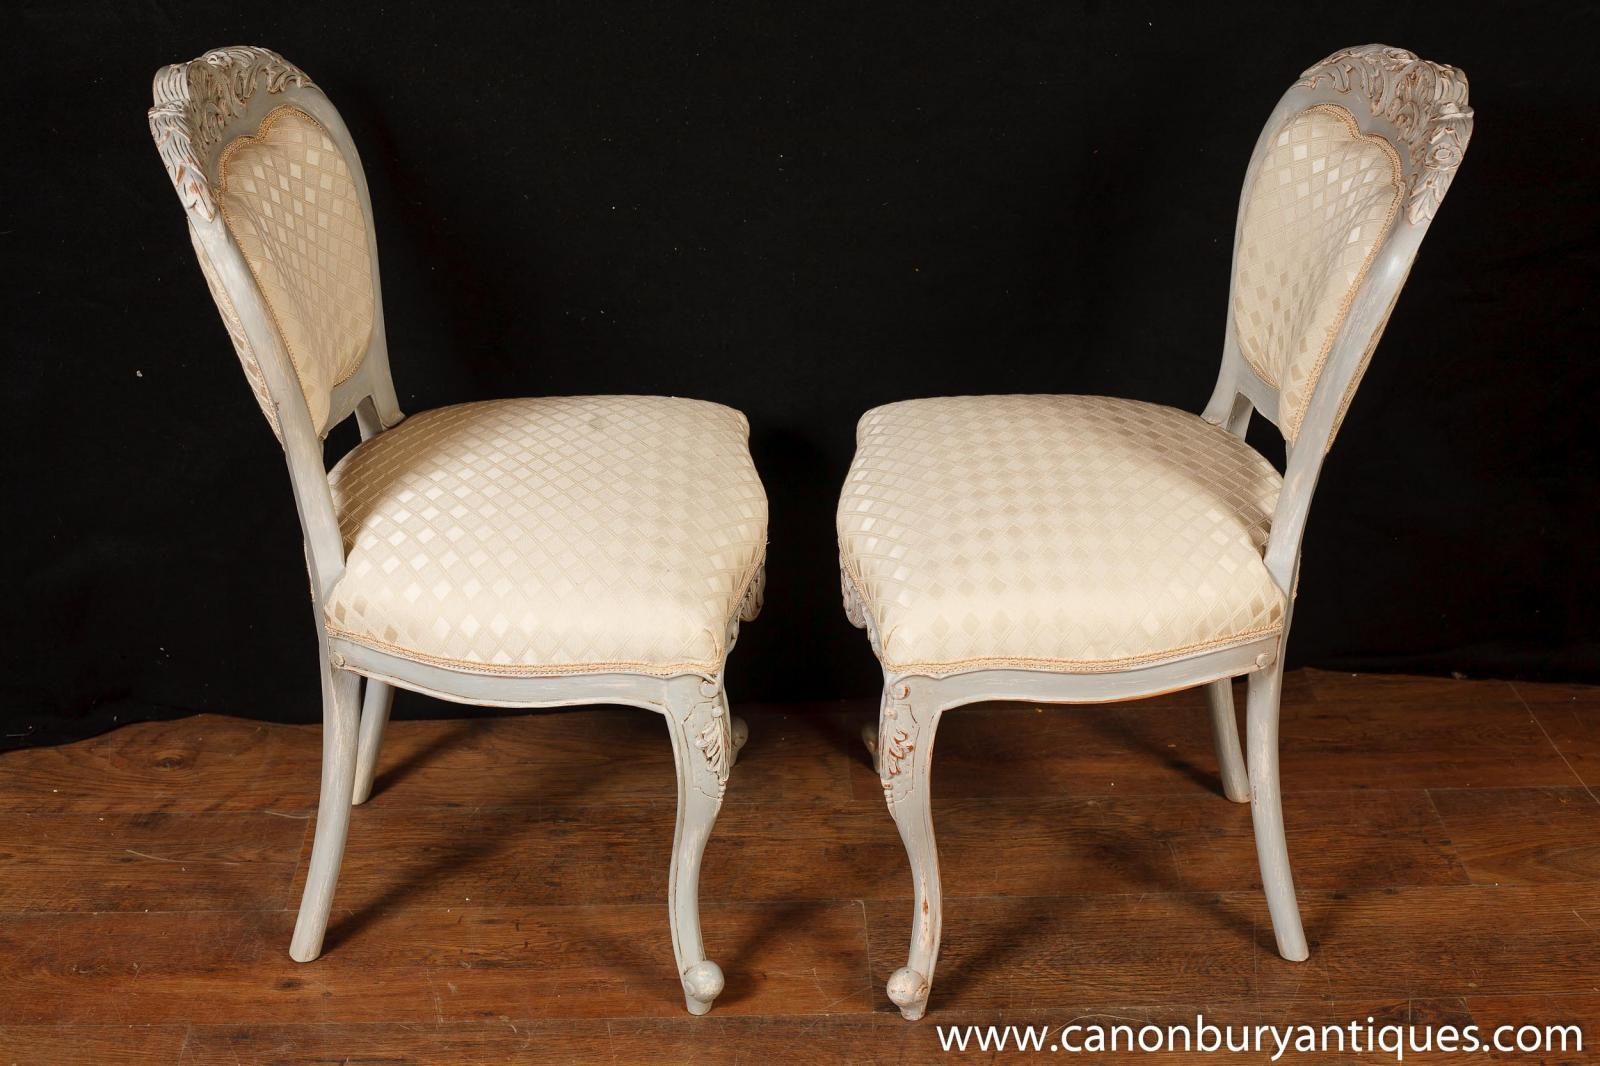 Rustic French Dining Chairs wonderful rustic french dining chairs country ladder back chair